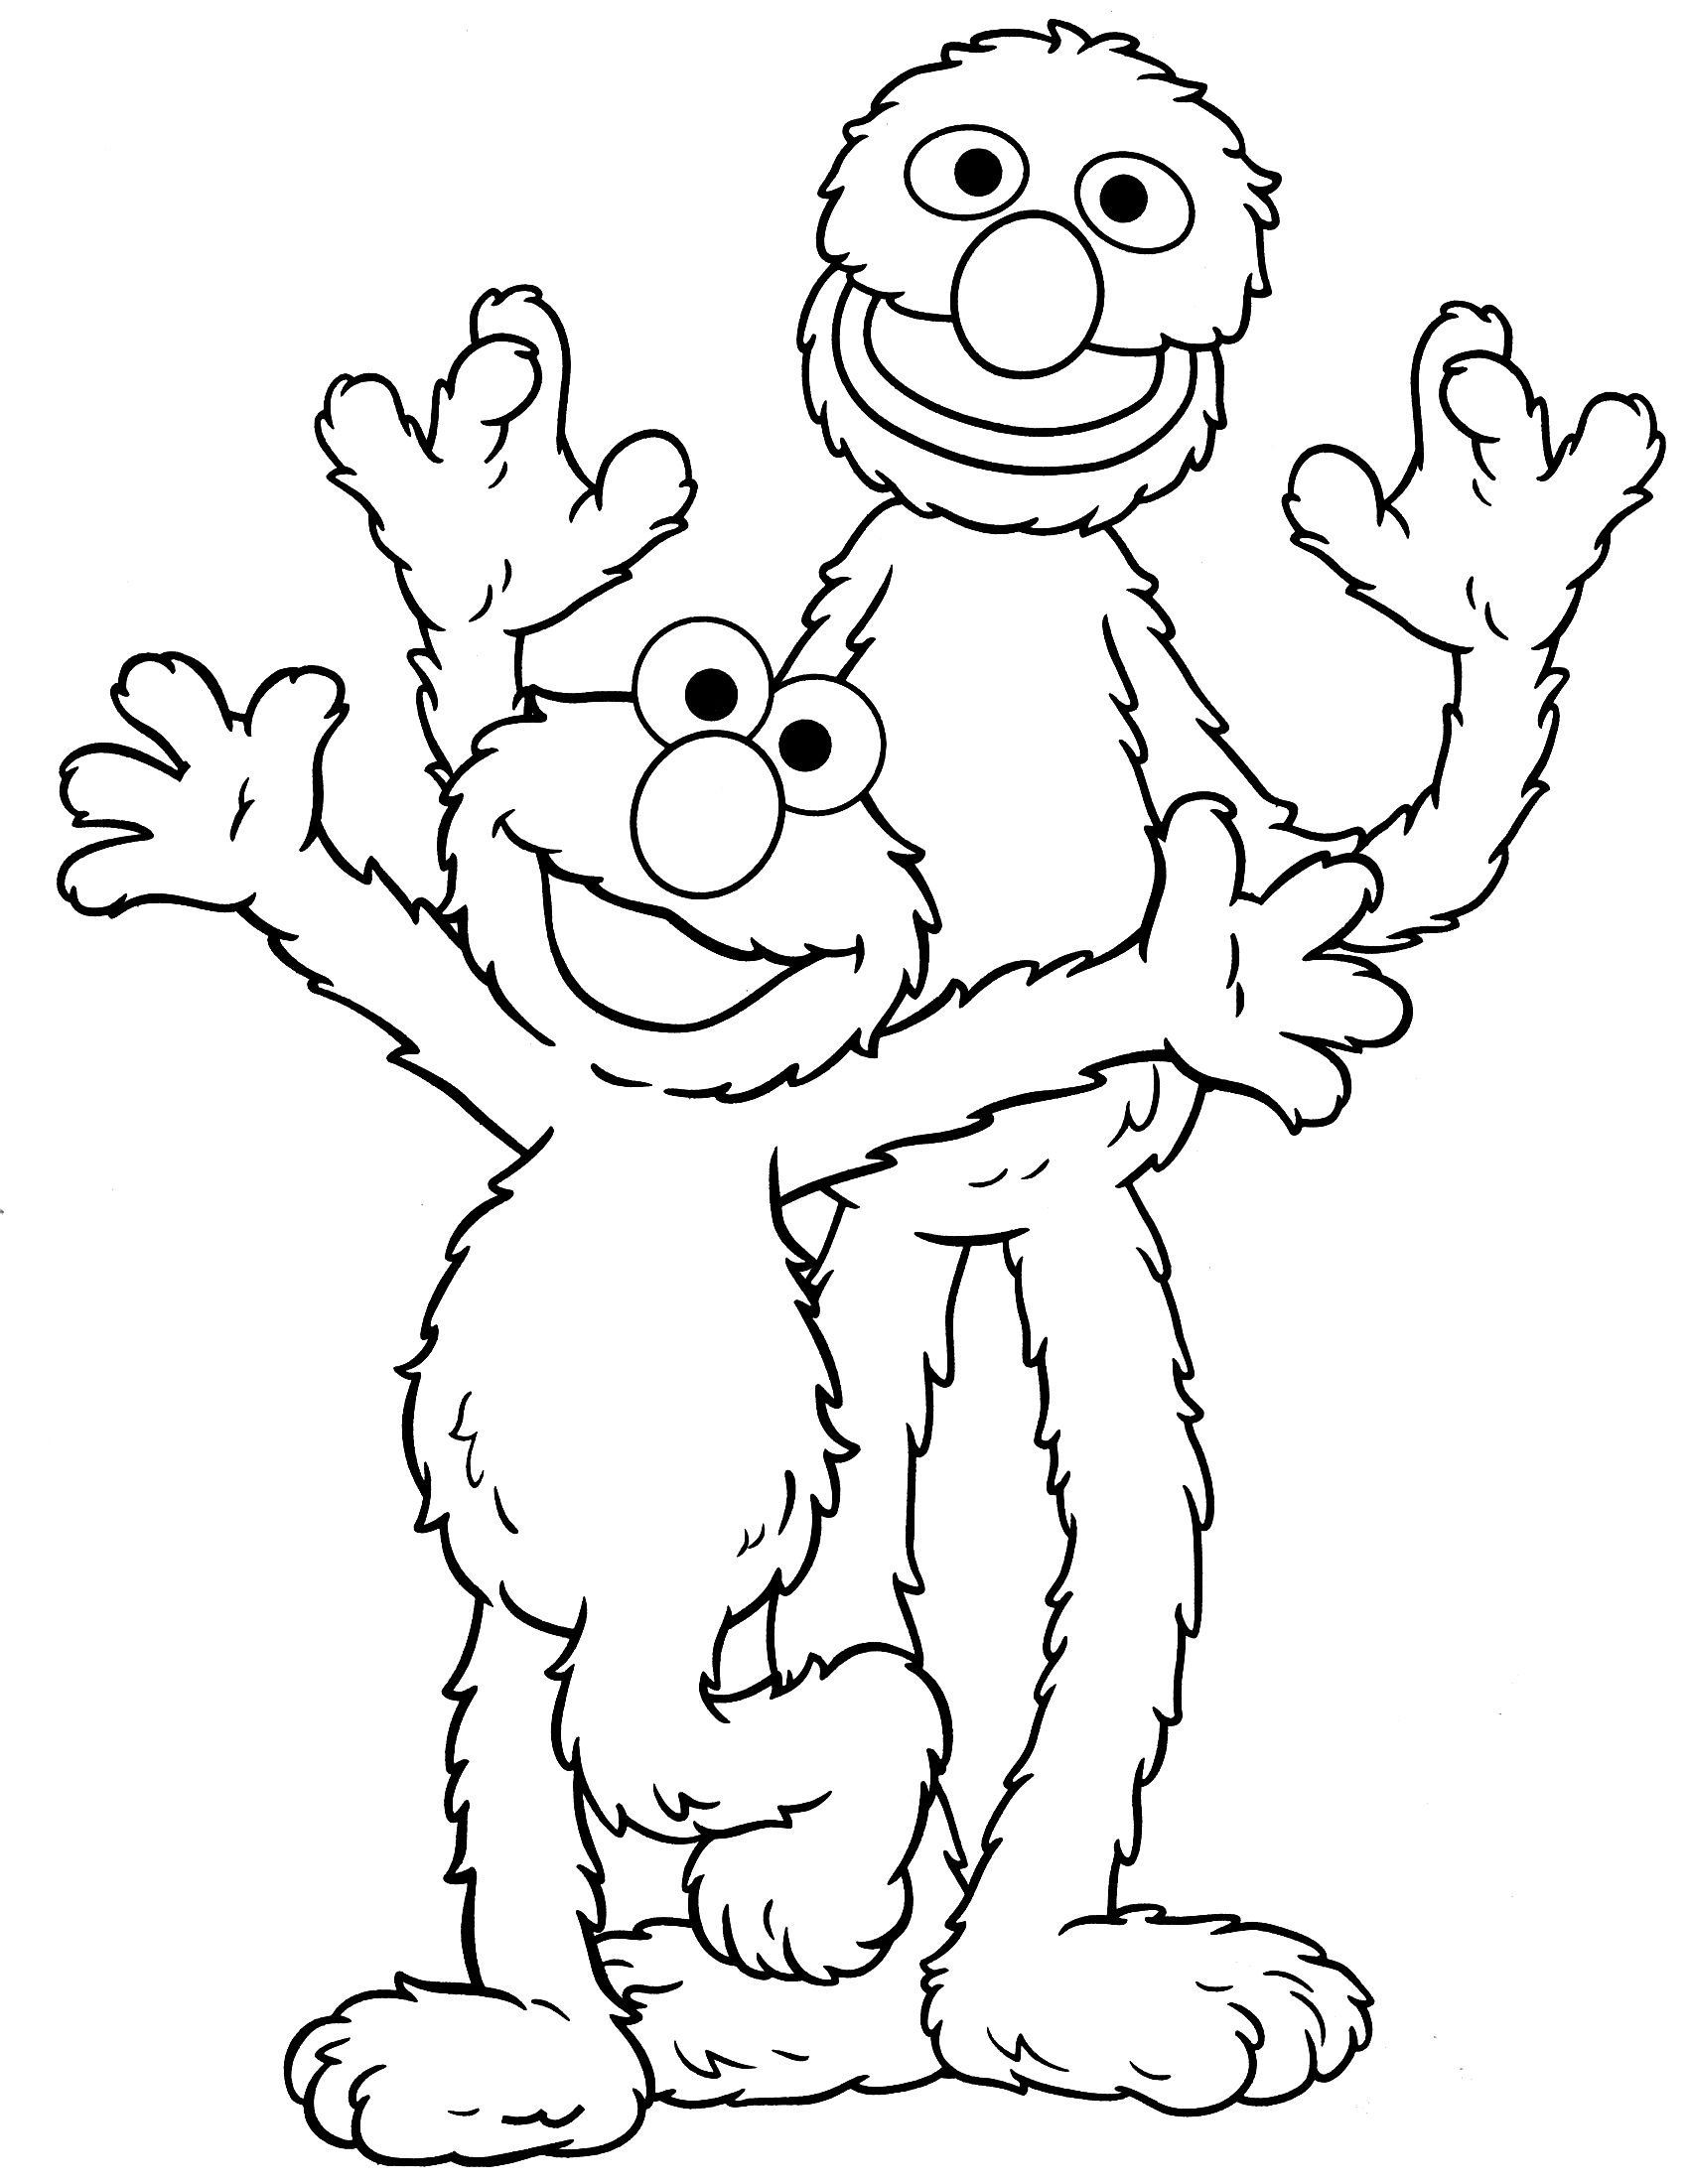 sesame street holiday coloring pages - photo#17